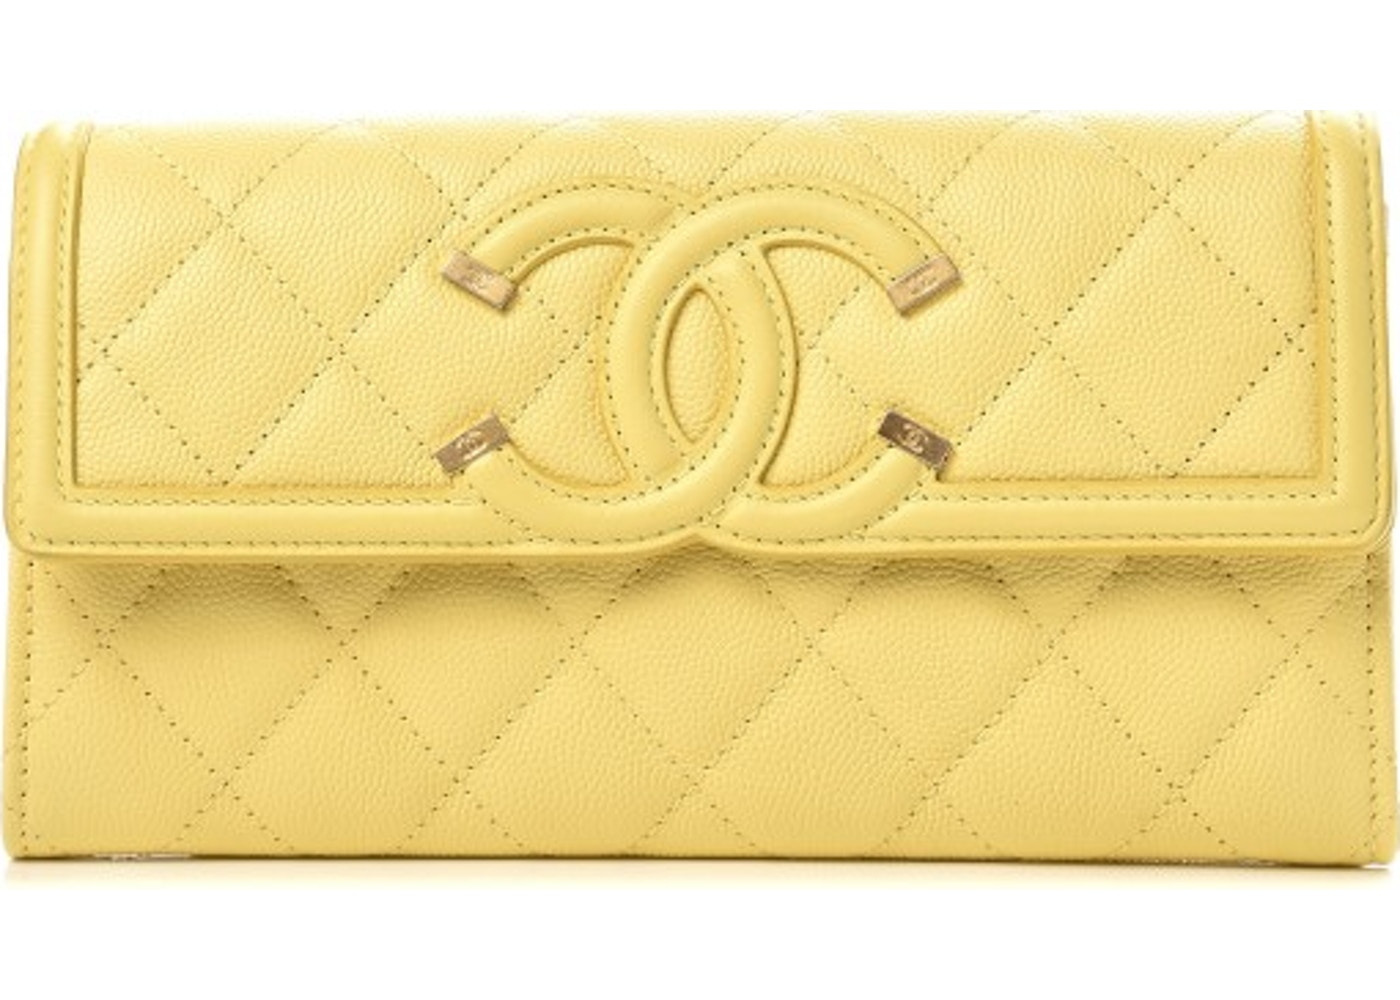 afcf073ae44a Chanel Filigree Flap Wallet Quilted Diamond Small Yellow. Quilted Diamond  Small Yellow